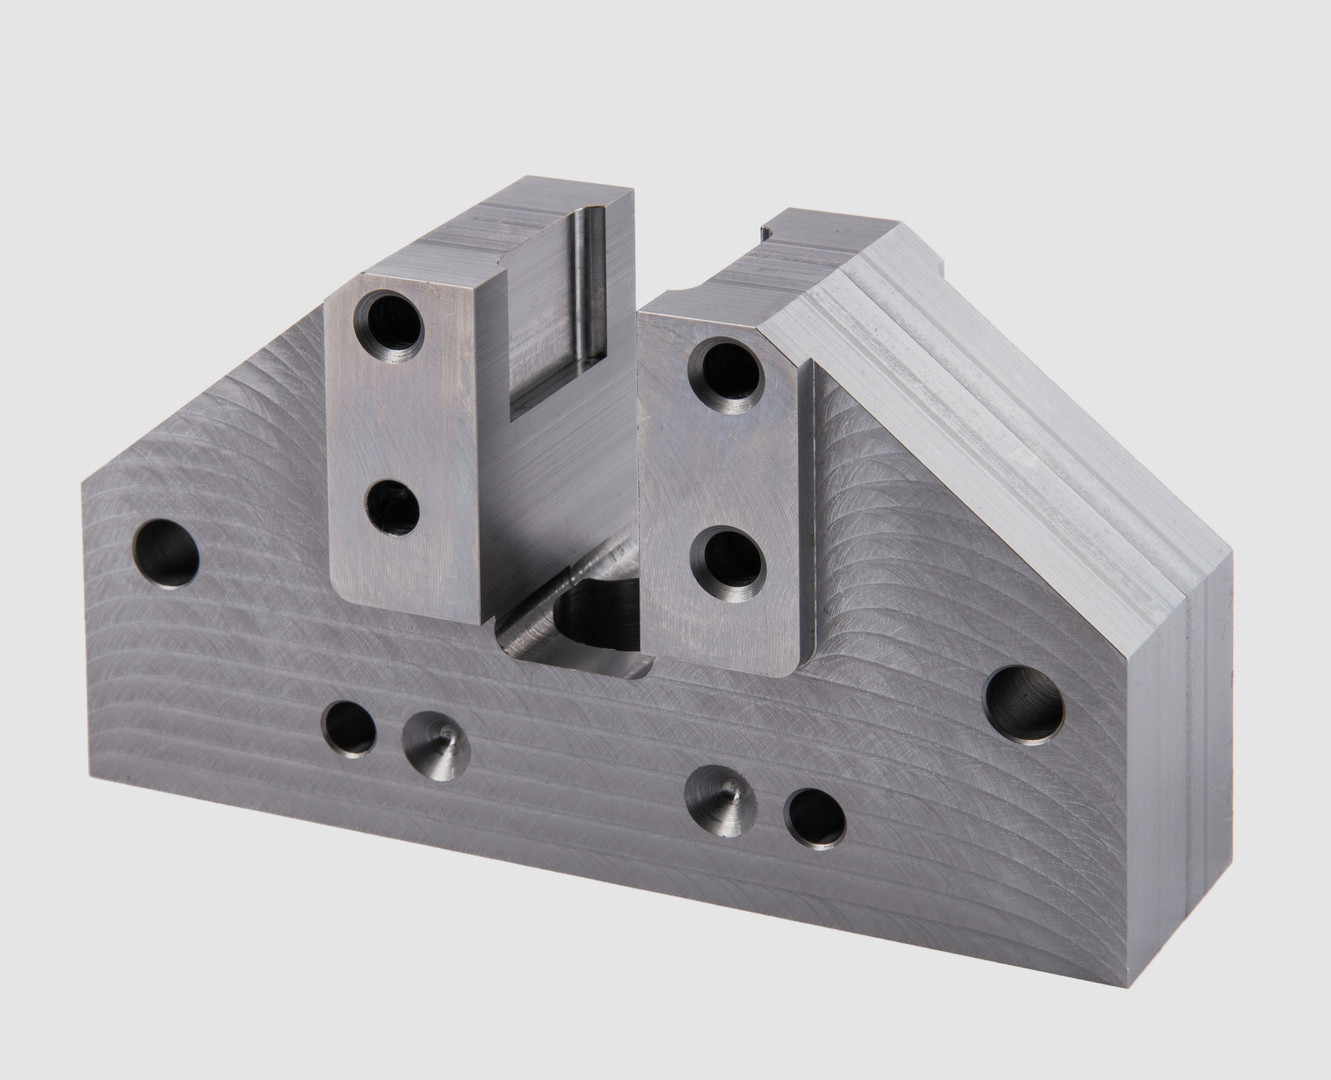 A complex machined metal part by Progressive Machining.